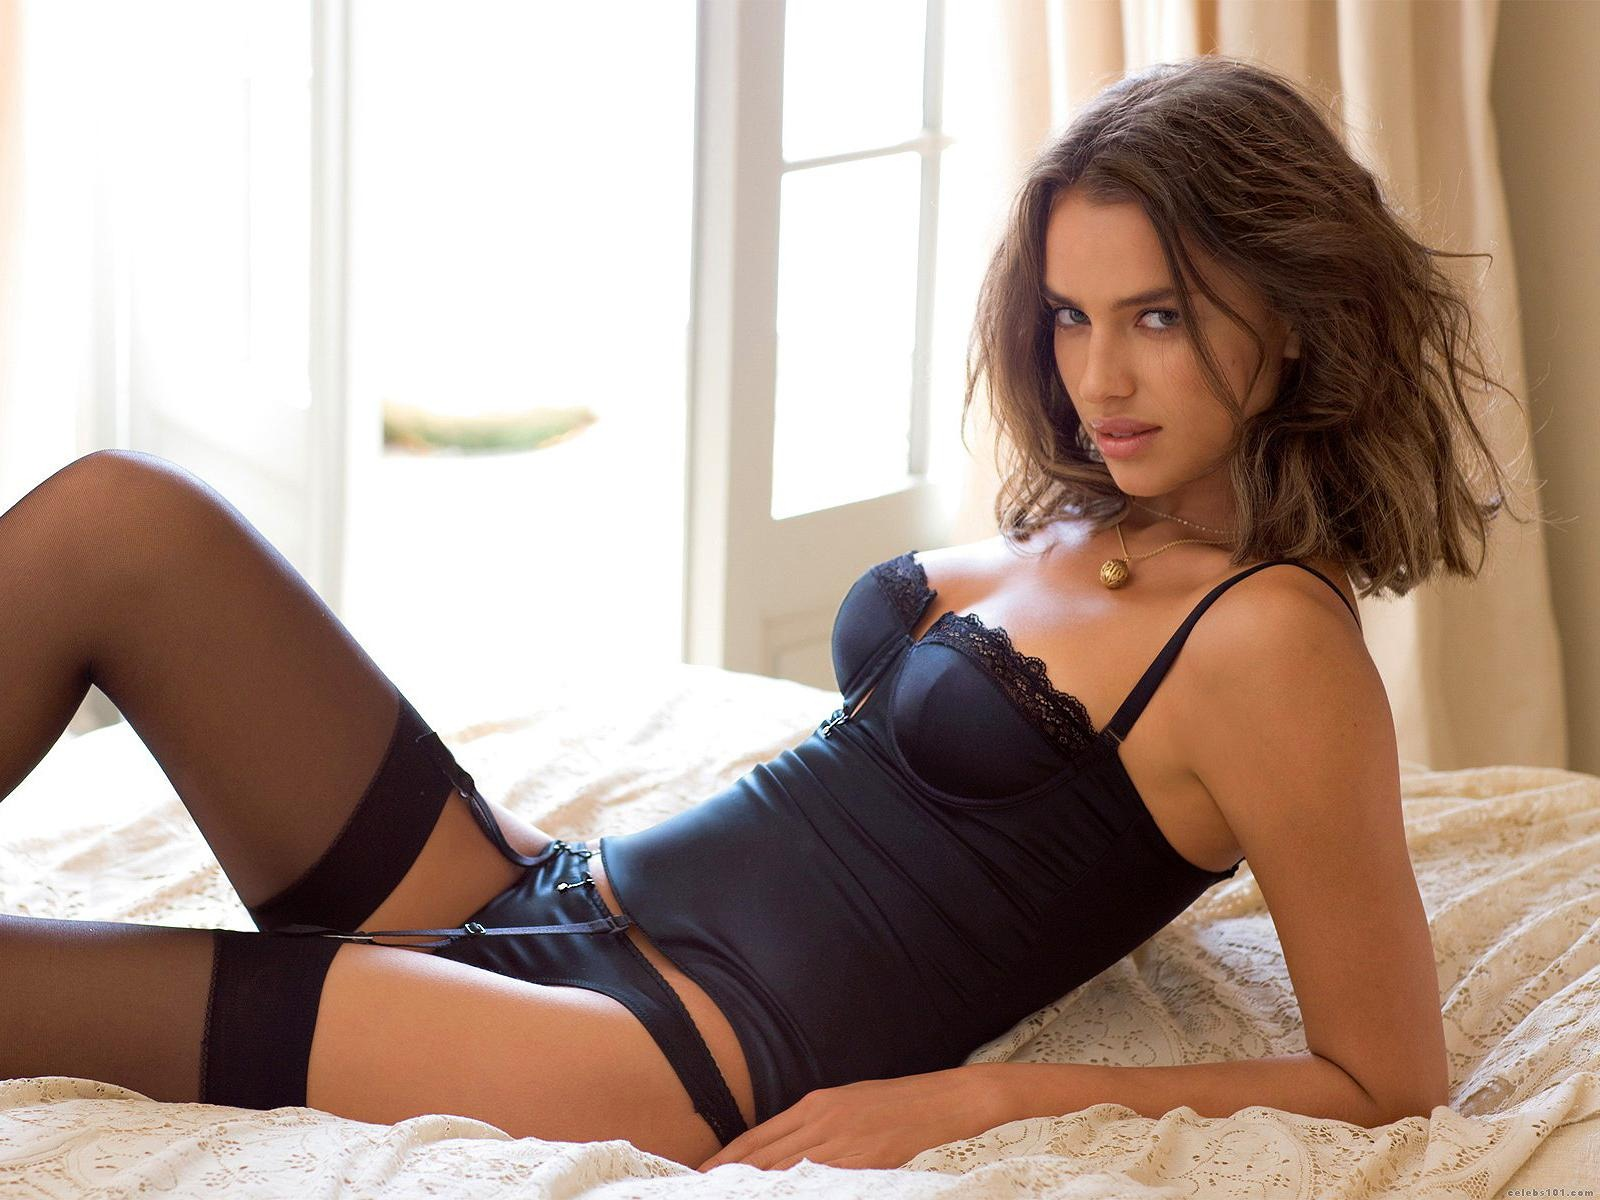 Irina shayk profile and images pictures 2012 hot for Hot images blog